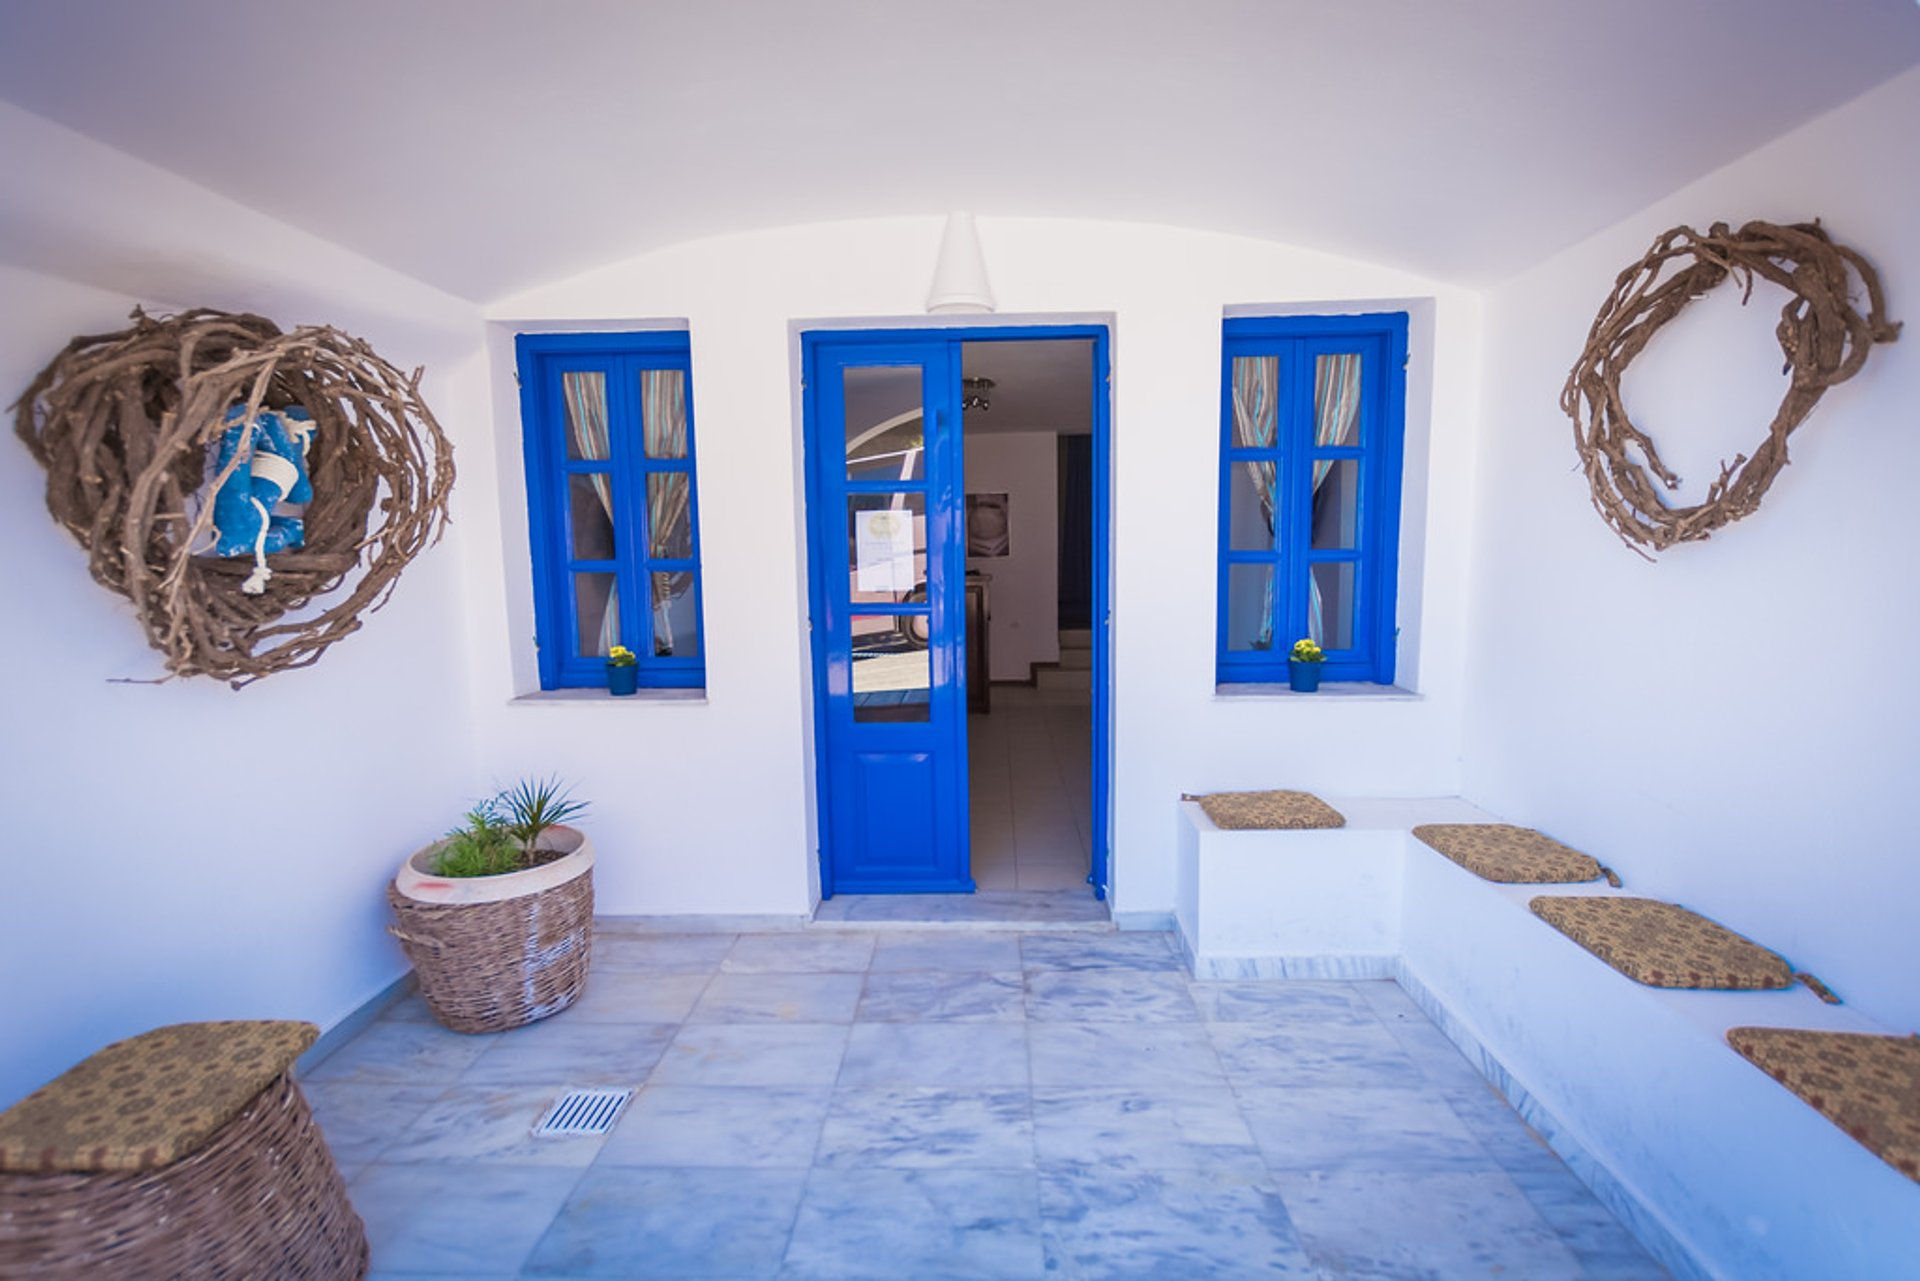 Whitewashing Houses in Santorini - Best Season 2020